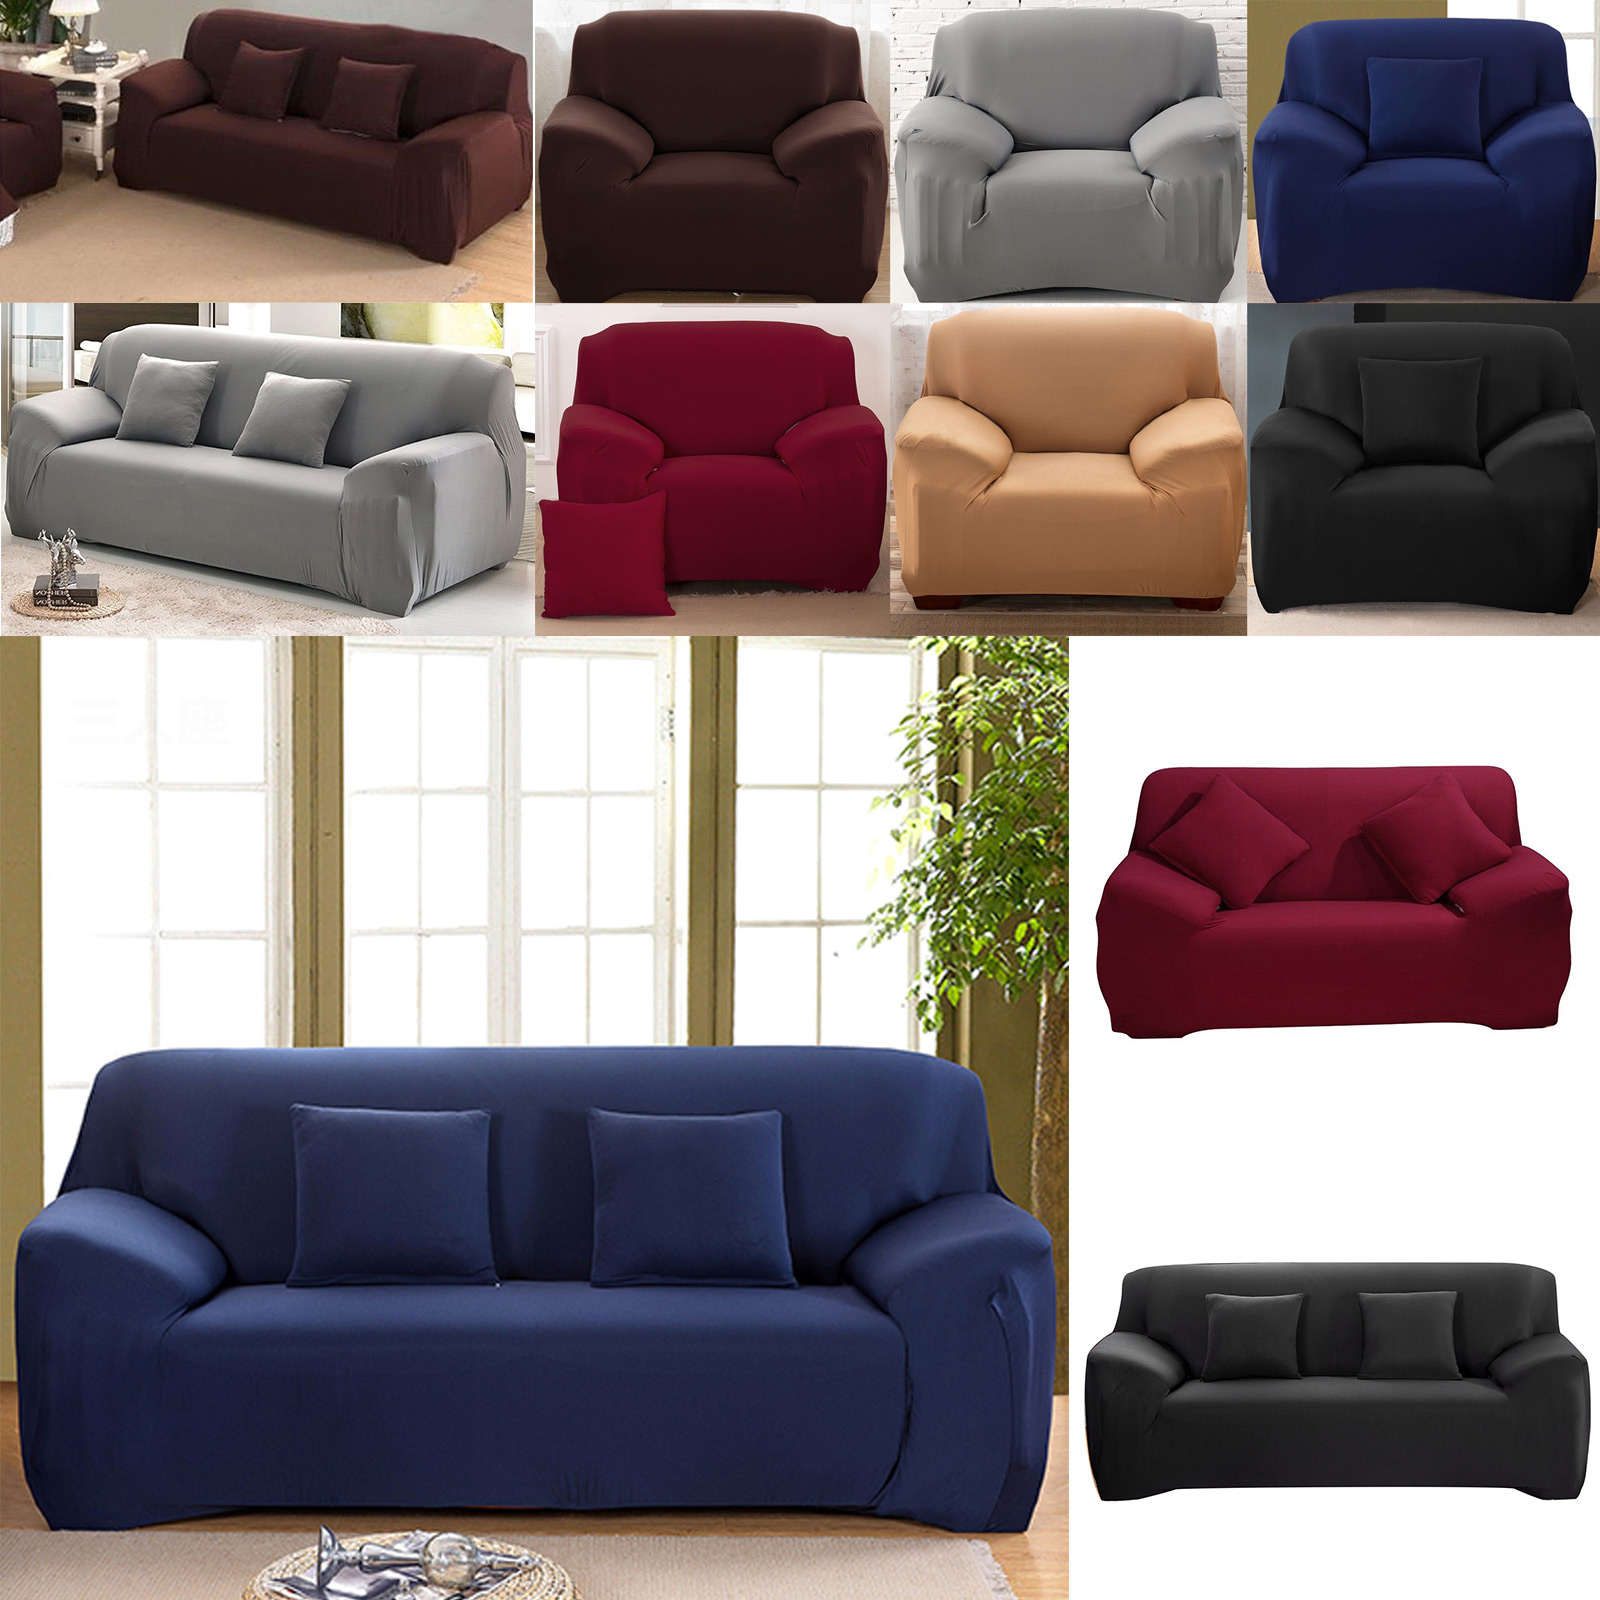 1 2 3 Sofa Covers Couch Slipcover Stretch Elastic Fabric